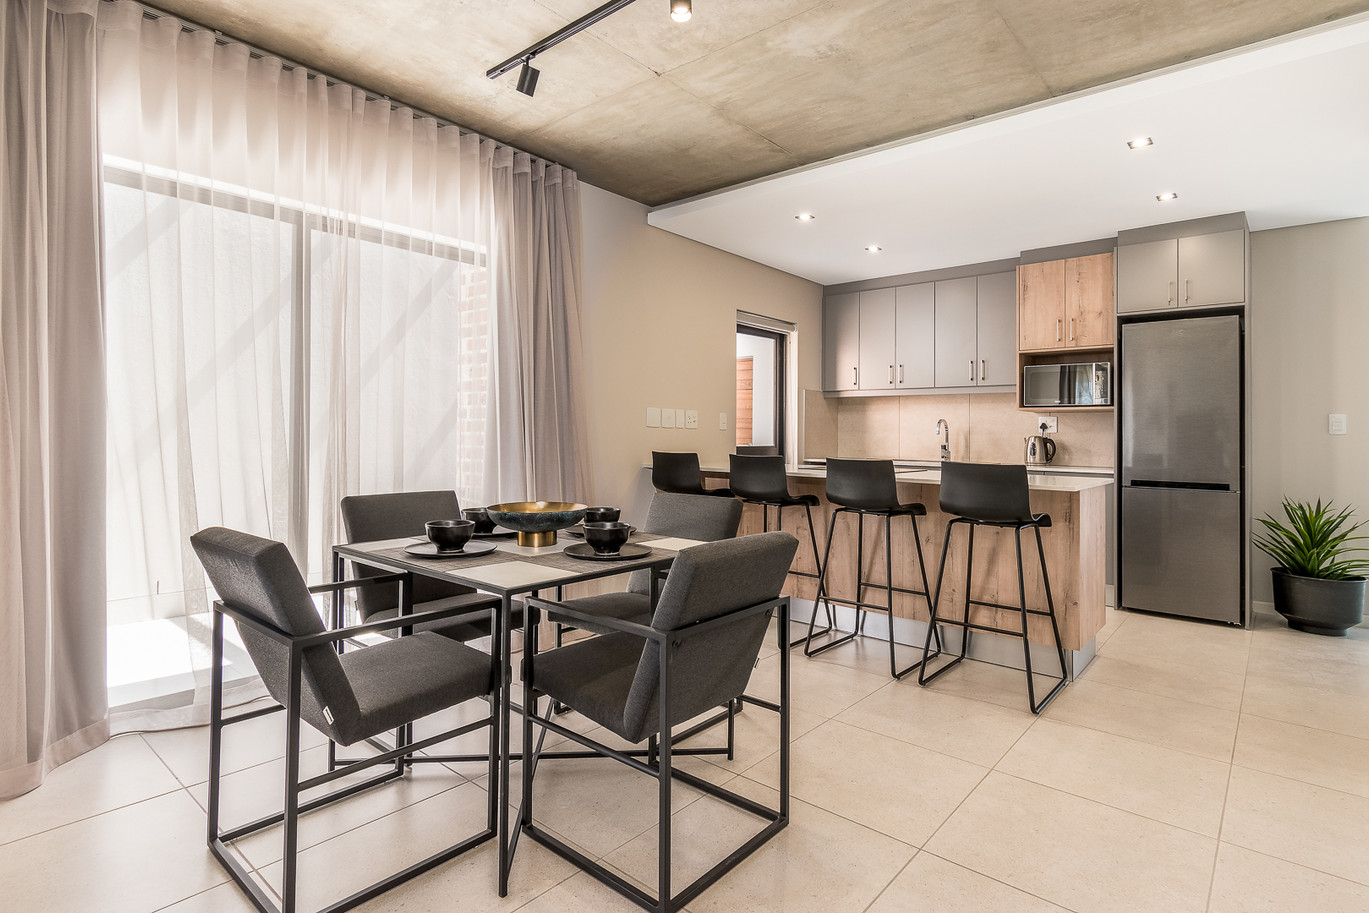 Greystone-Dining room and Kitchen 1